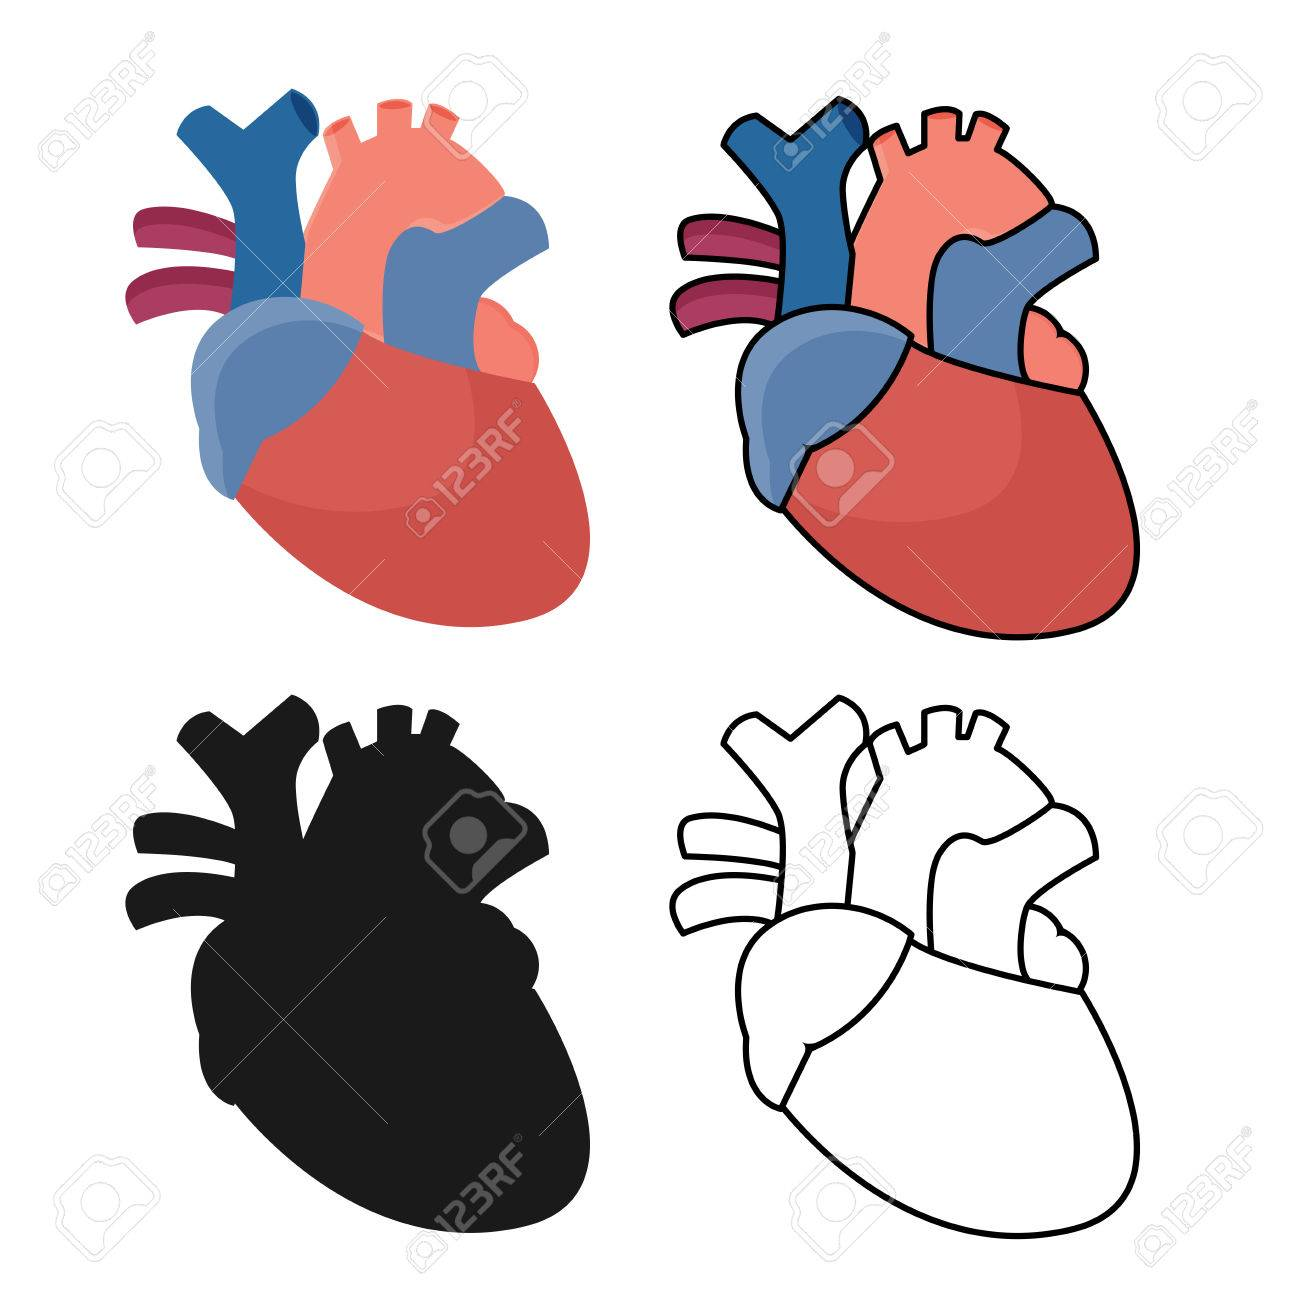 Anatomical Heart Flat Graphic Royalty Free Cliparts Vectors And